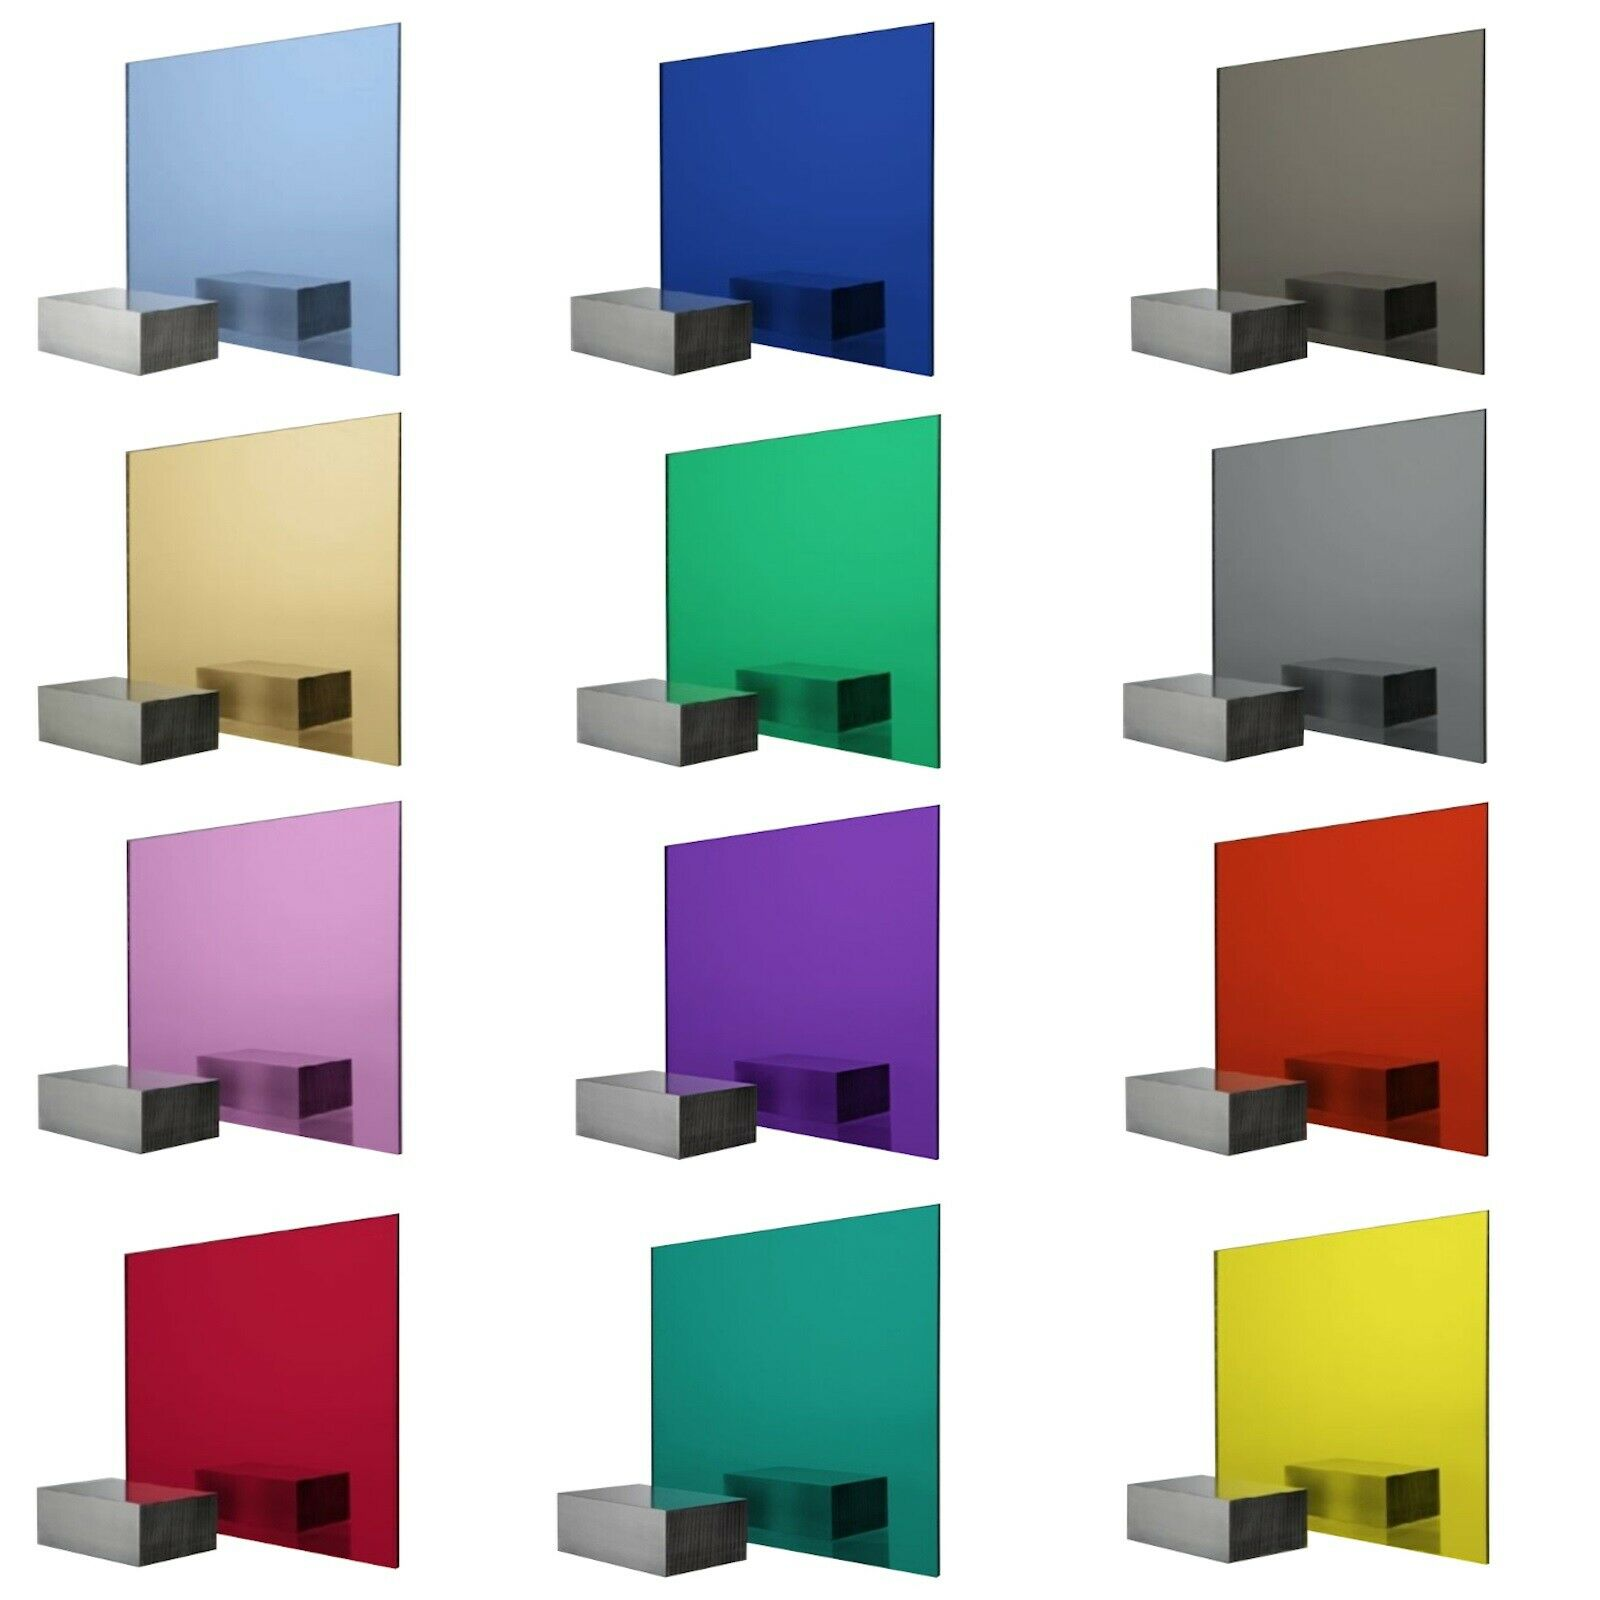 Acrylic Colour Perspex Mosaic Safety Mirror Tiles 55mm, 100mm, 150mm & 200mm Sq